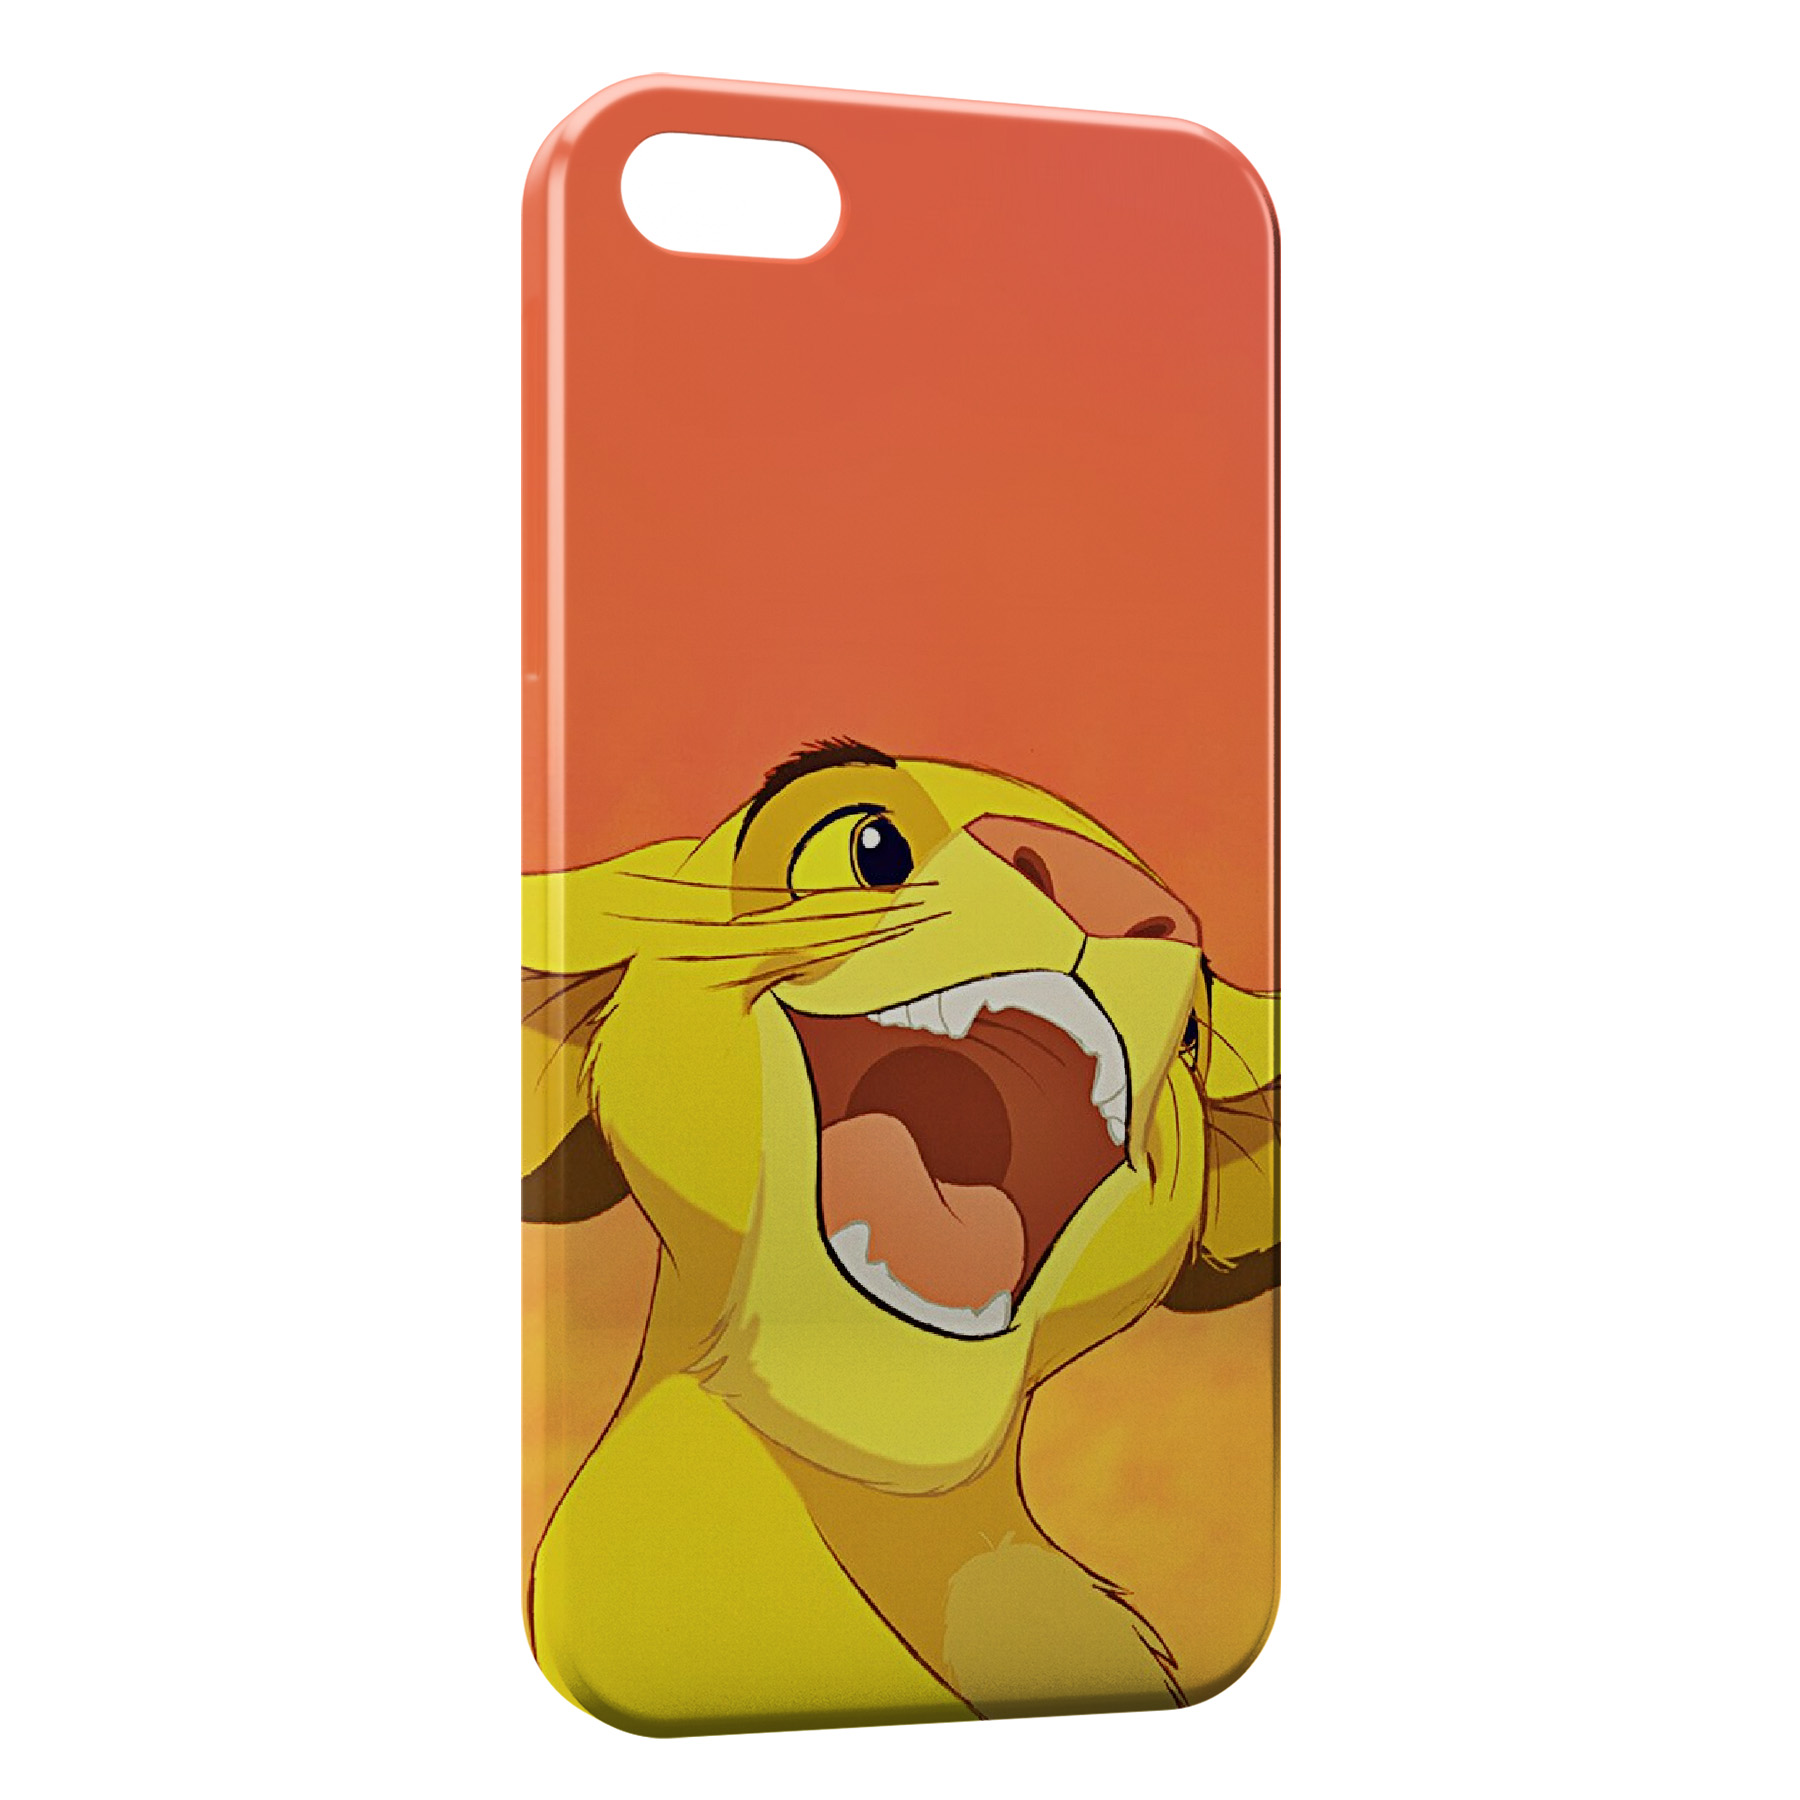 Coque iPhone 6 Plus 6S Plus Simba Le Roi Lion